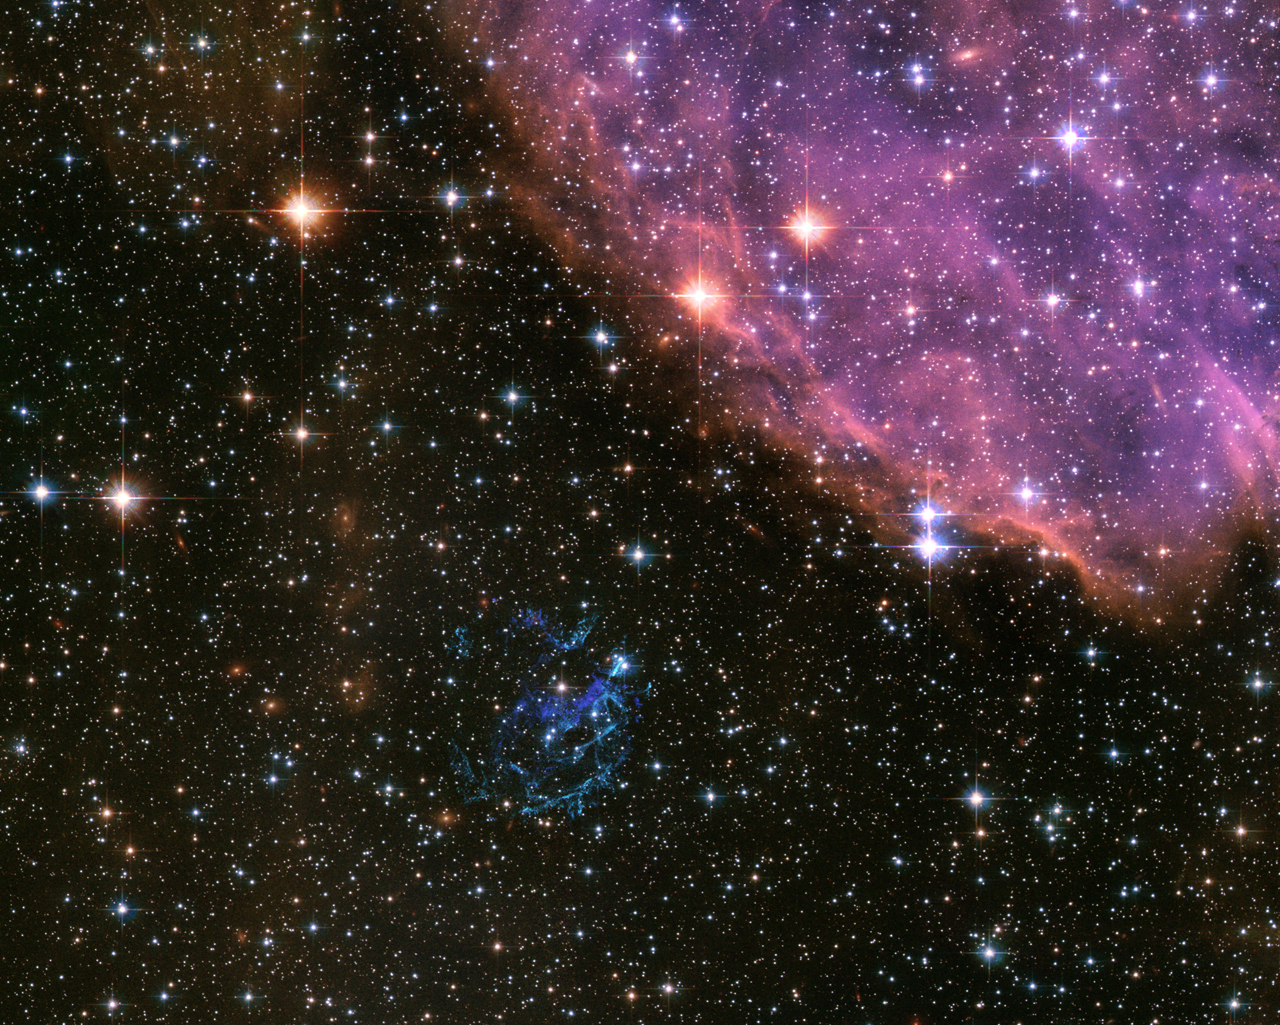 APOD: 2006 August 29 - Supernova Remnant E0102 from Hubble